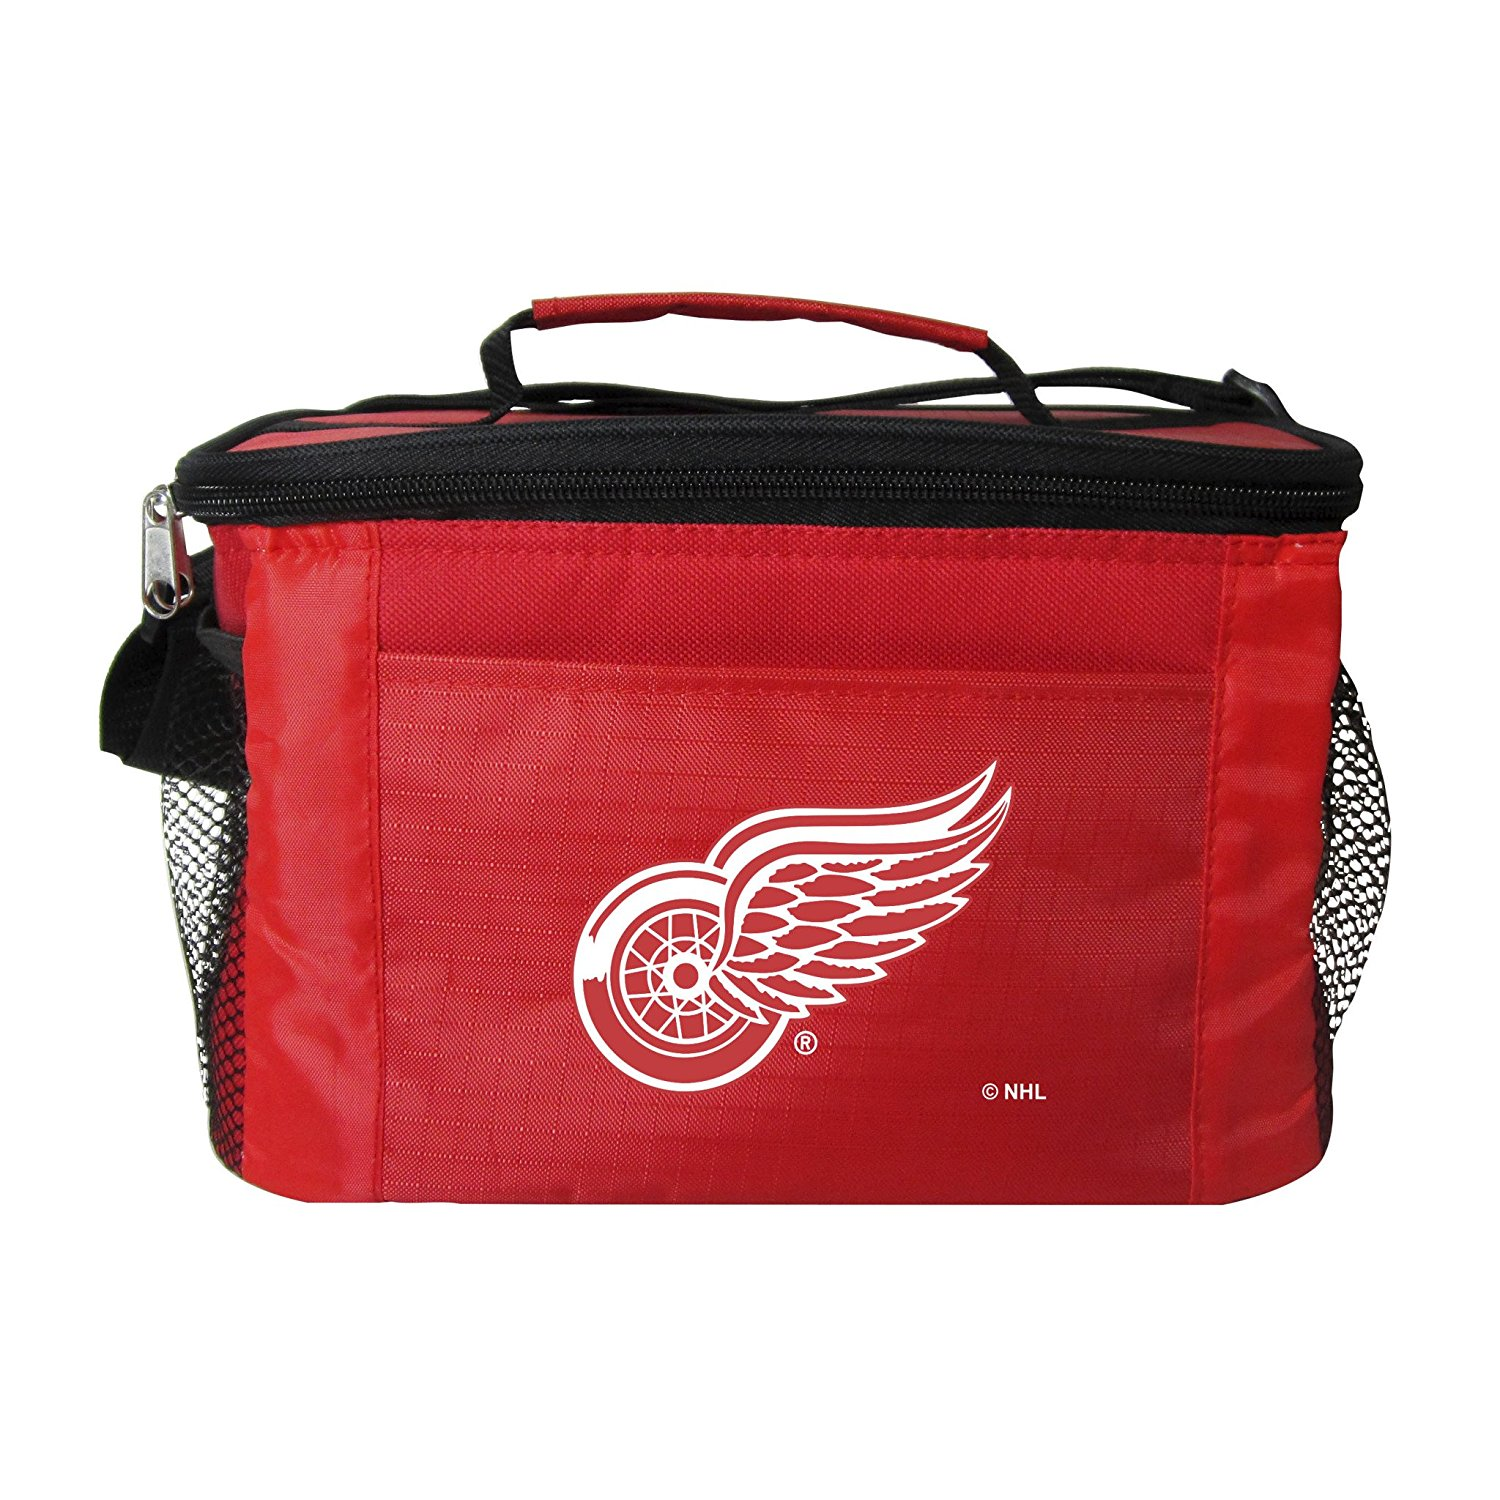 NHL Detroit Red Wings 6 Can Cooler Bag